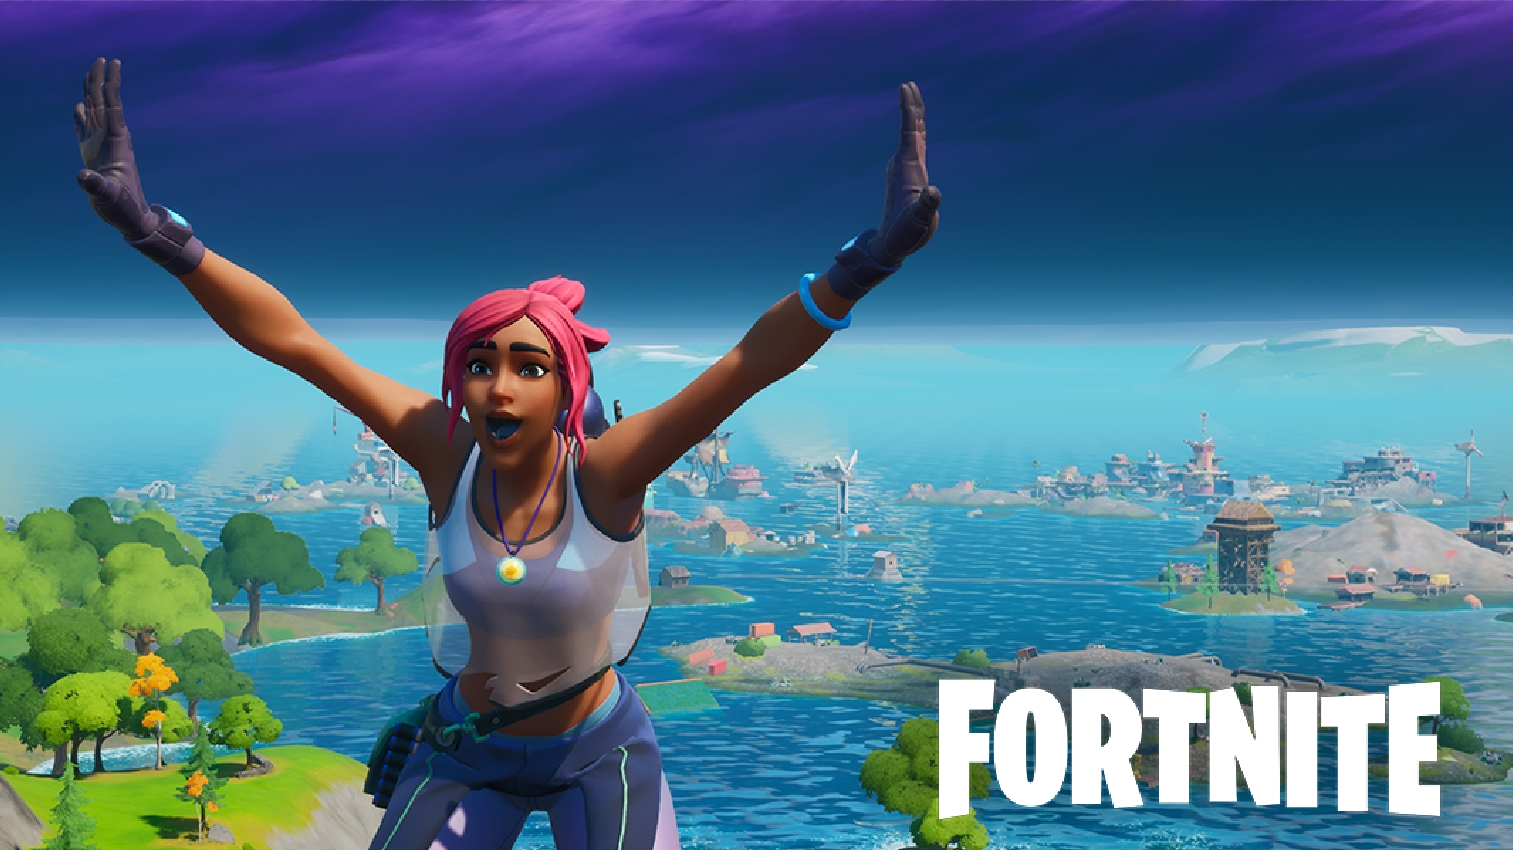 Fortnite character in front of Season 3 map